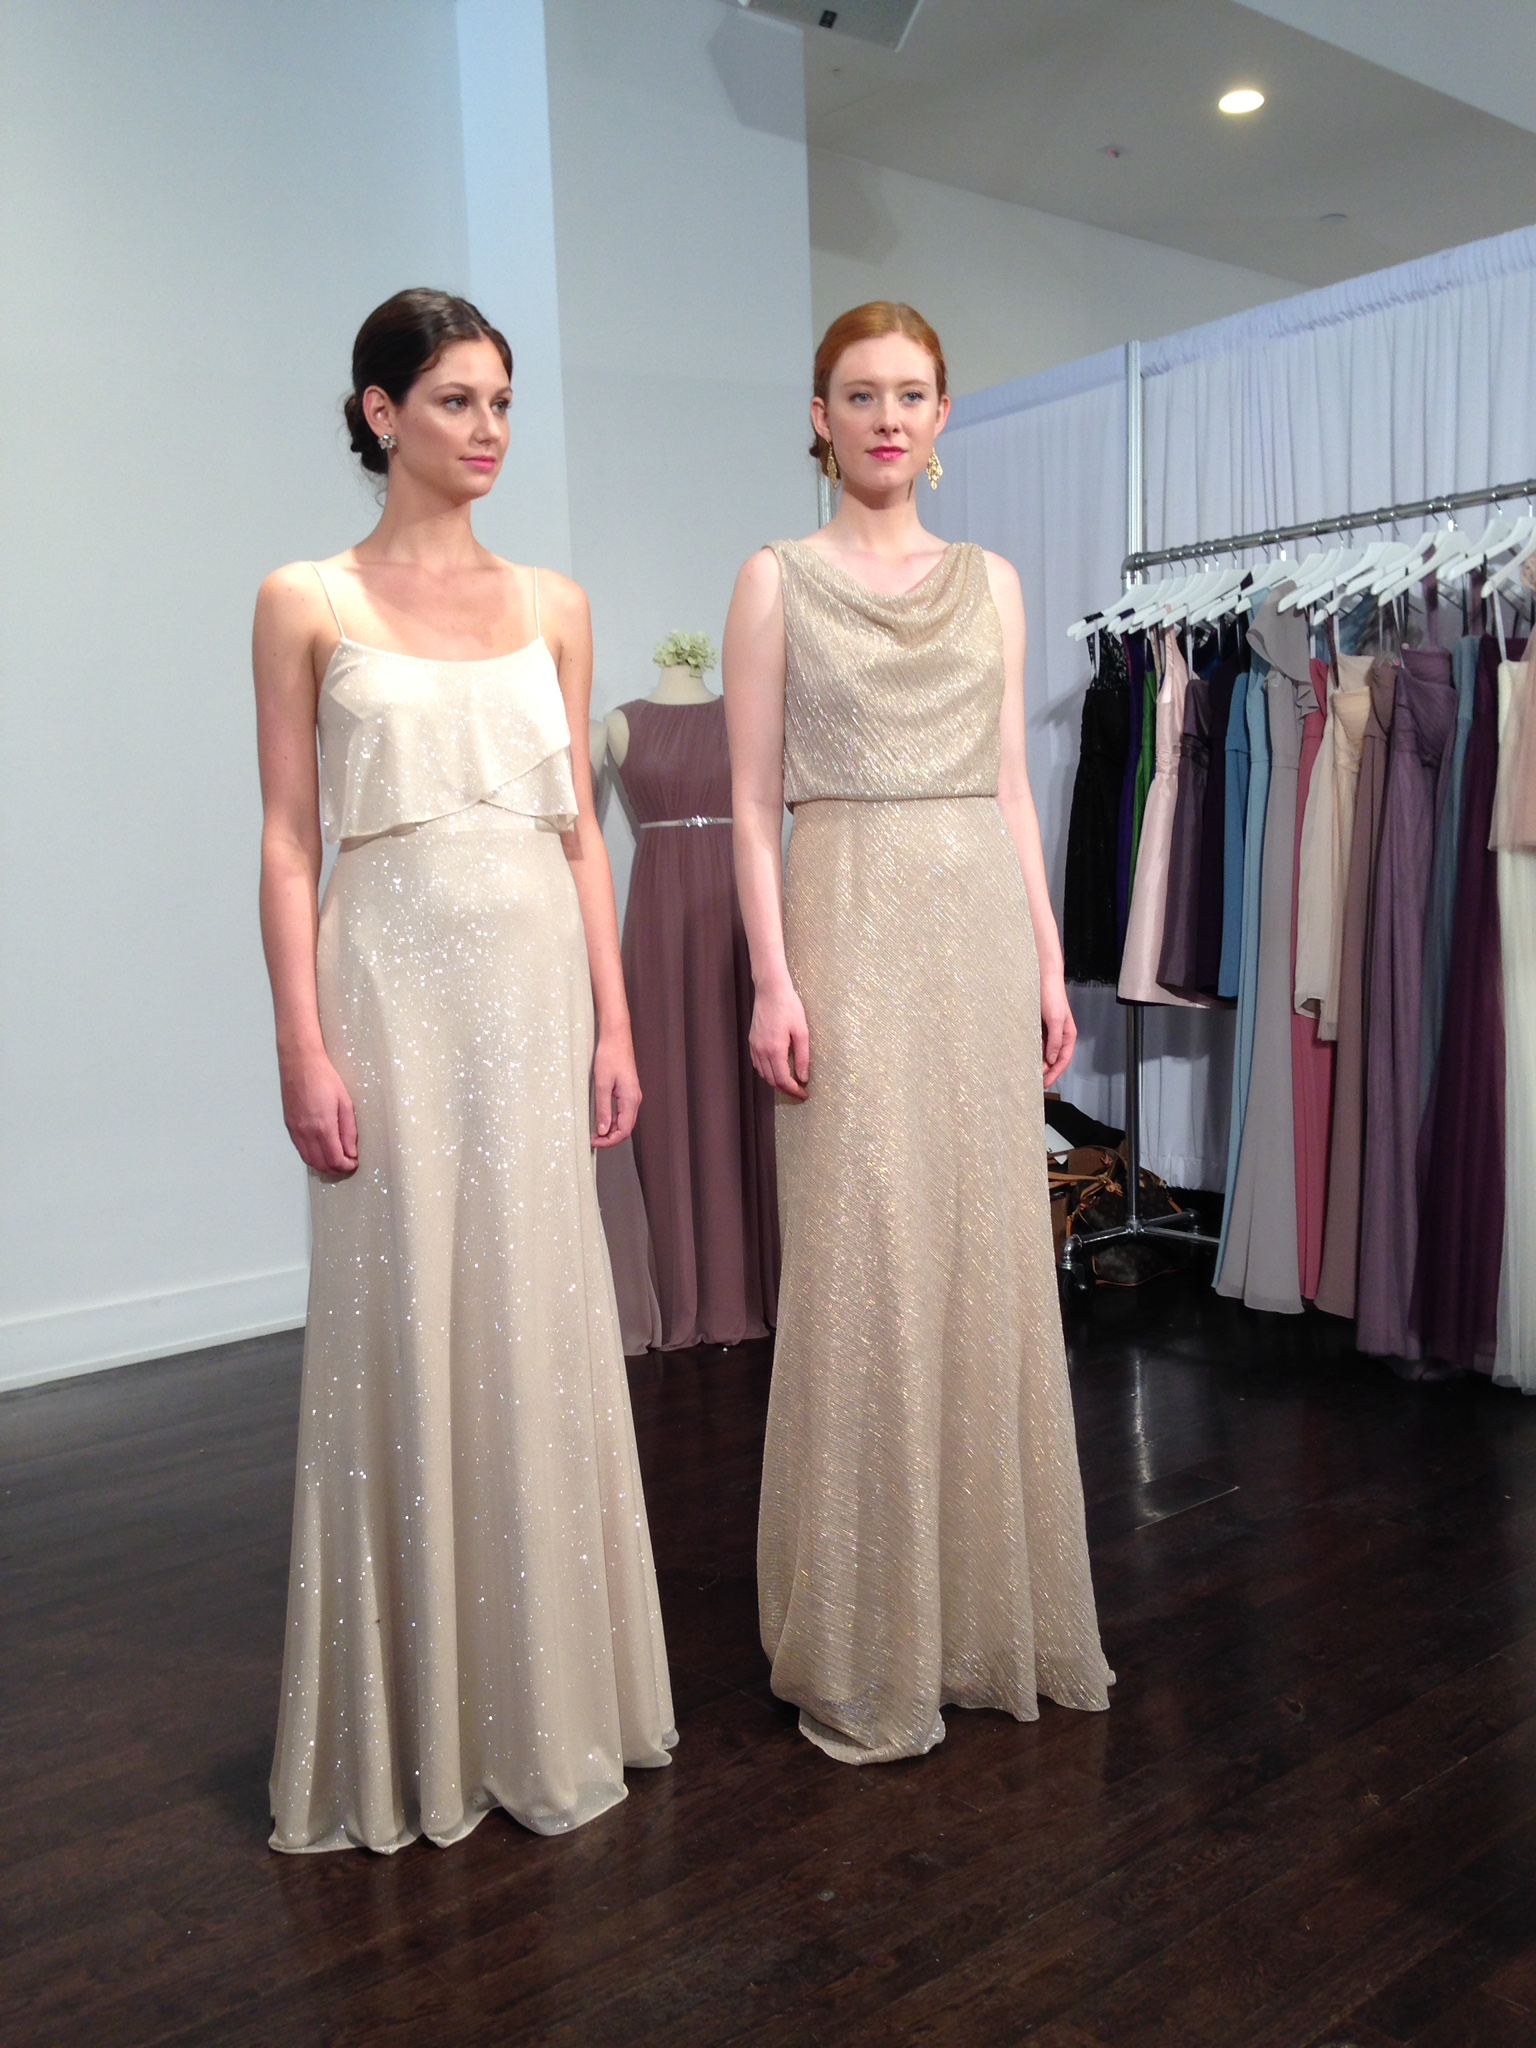 Nyc bridal market 2014 flutter bridal boutique minneapolis gold sparkle does not disappoint bridesmaids dresses from jenny yoo ombrellifo Images